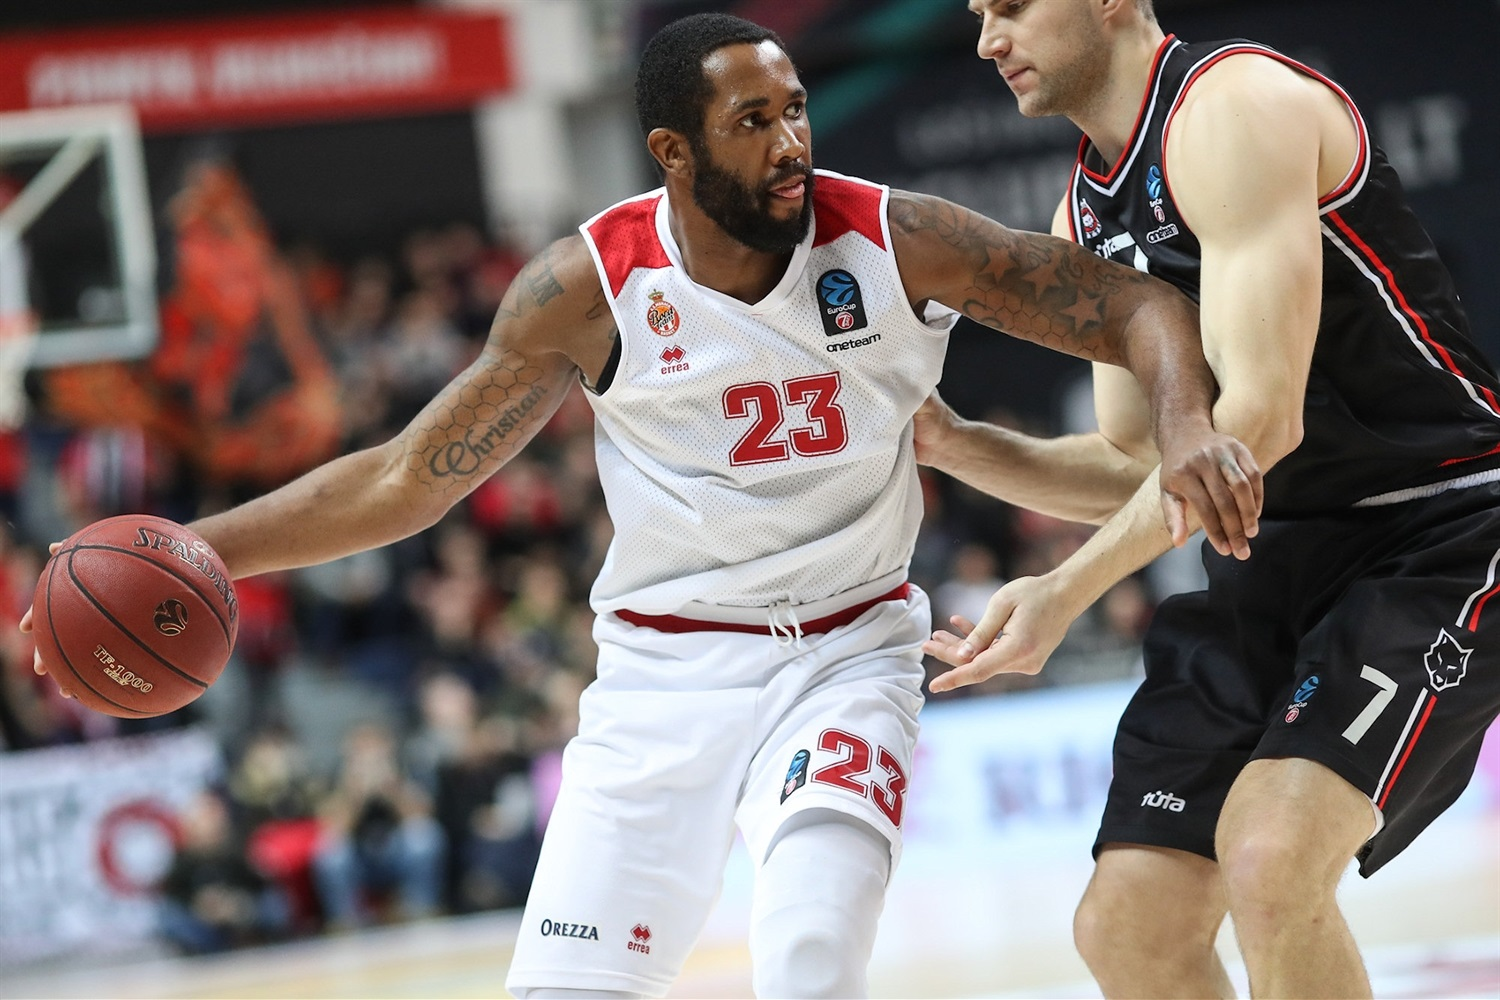 Eric Buckner - AS Monaco (photo Rytas) - EC18